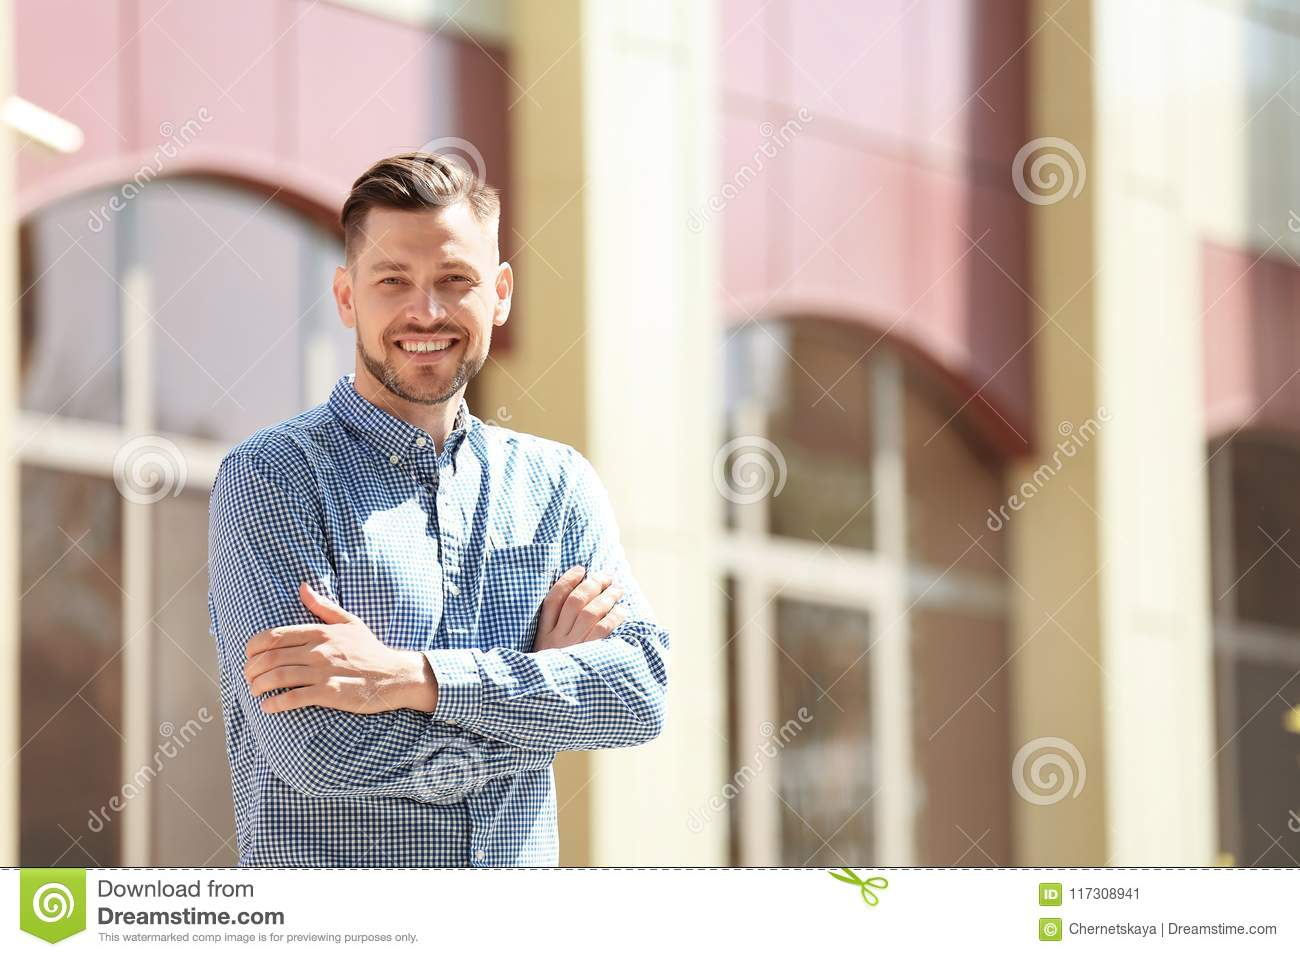 Portrait of young man in stylish outfit